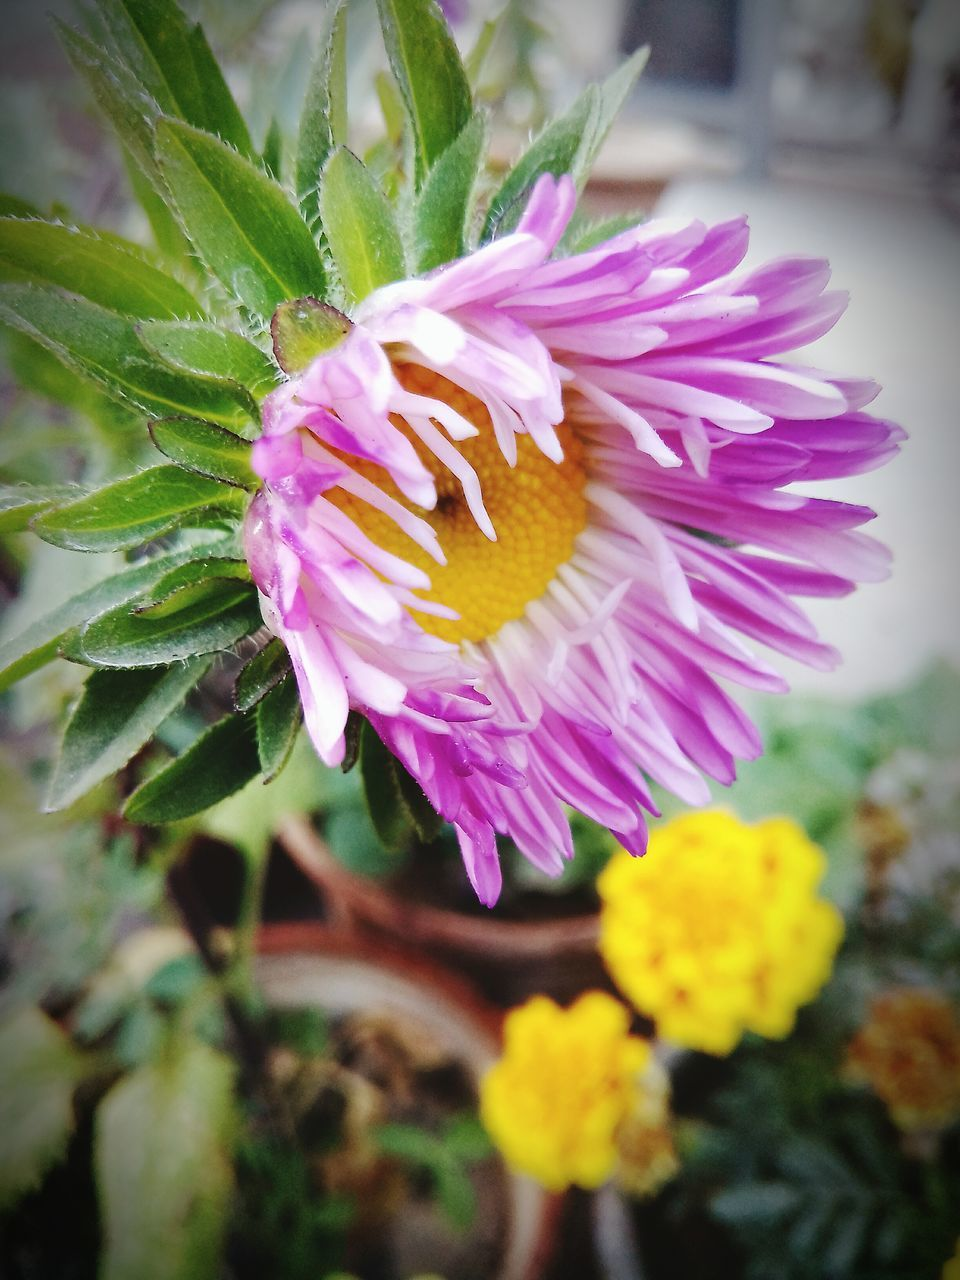 flower, petal, fragility, nature, beauty in nature, flower head, freshness, growth, plant, purple, no people, close-up, day, outdoors, one animal, blooming, focus on foreground, leaf, pink color, animal themes